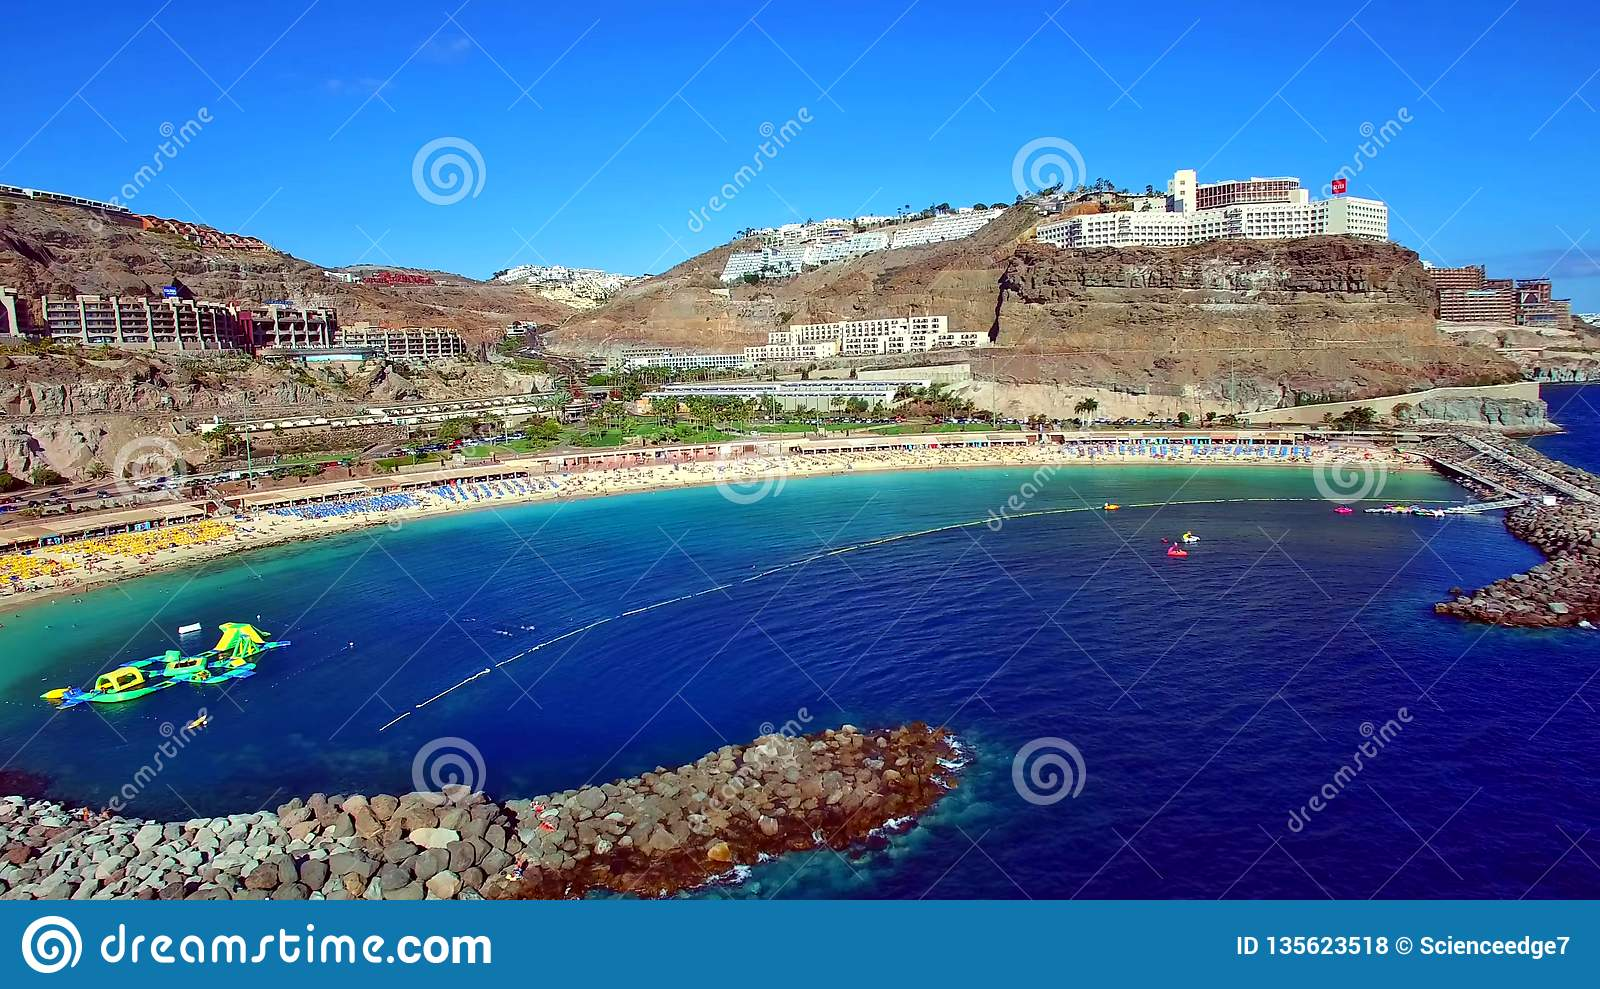 Landscape and view of beautiful Gran Canaria at Canary Islands, Spain